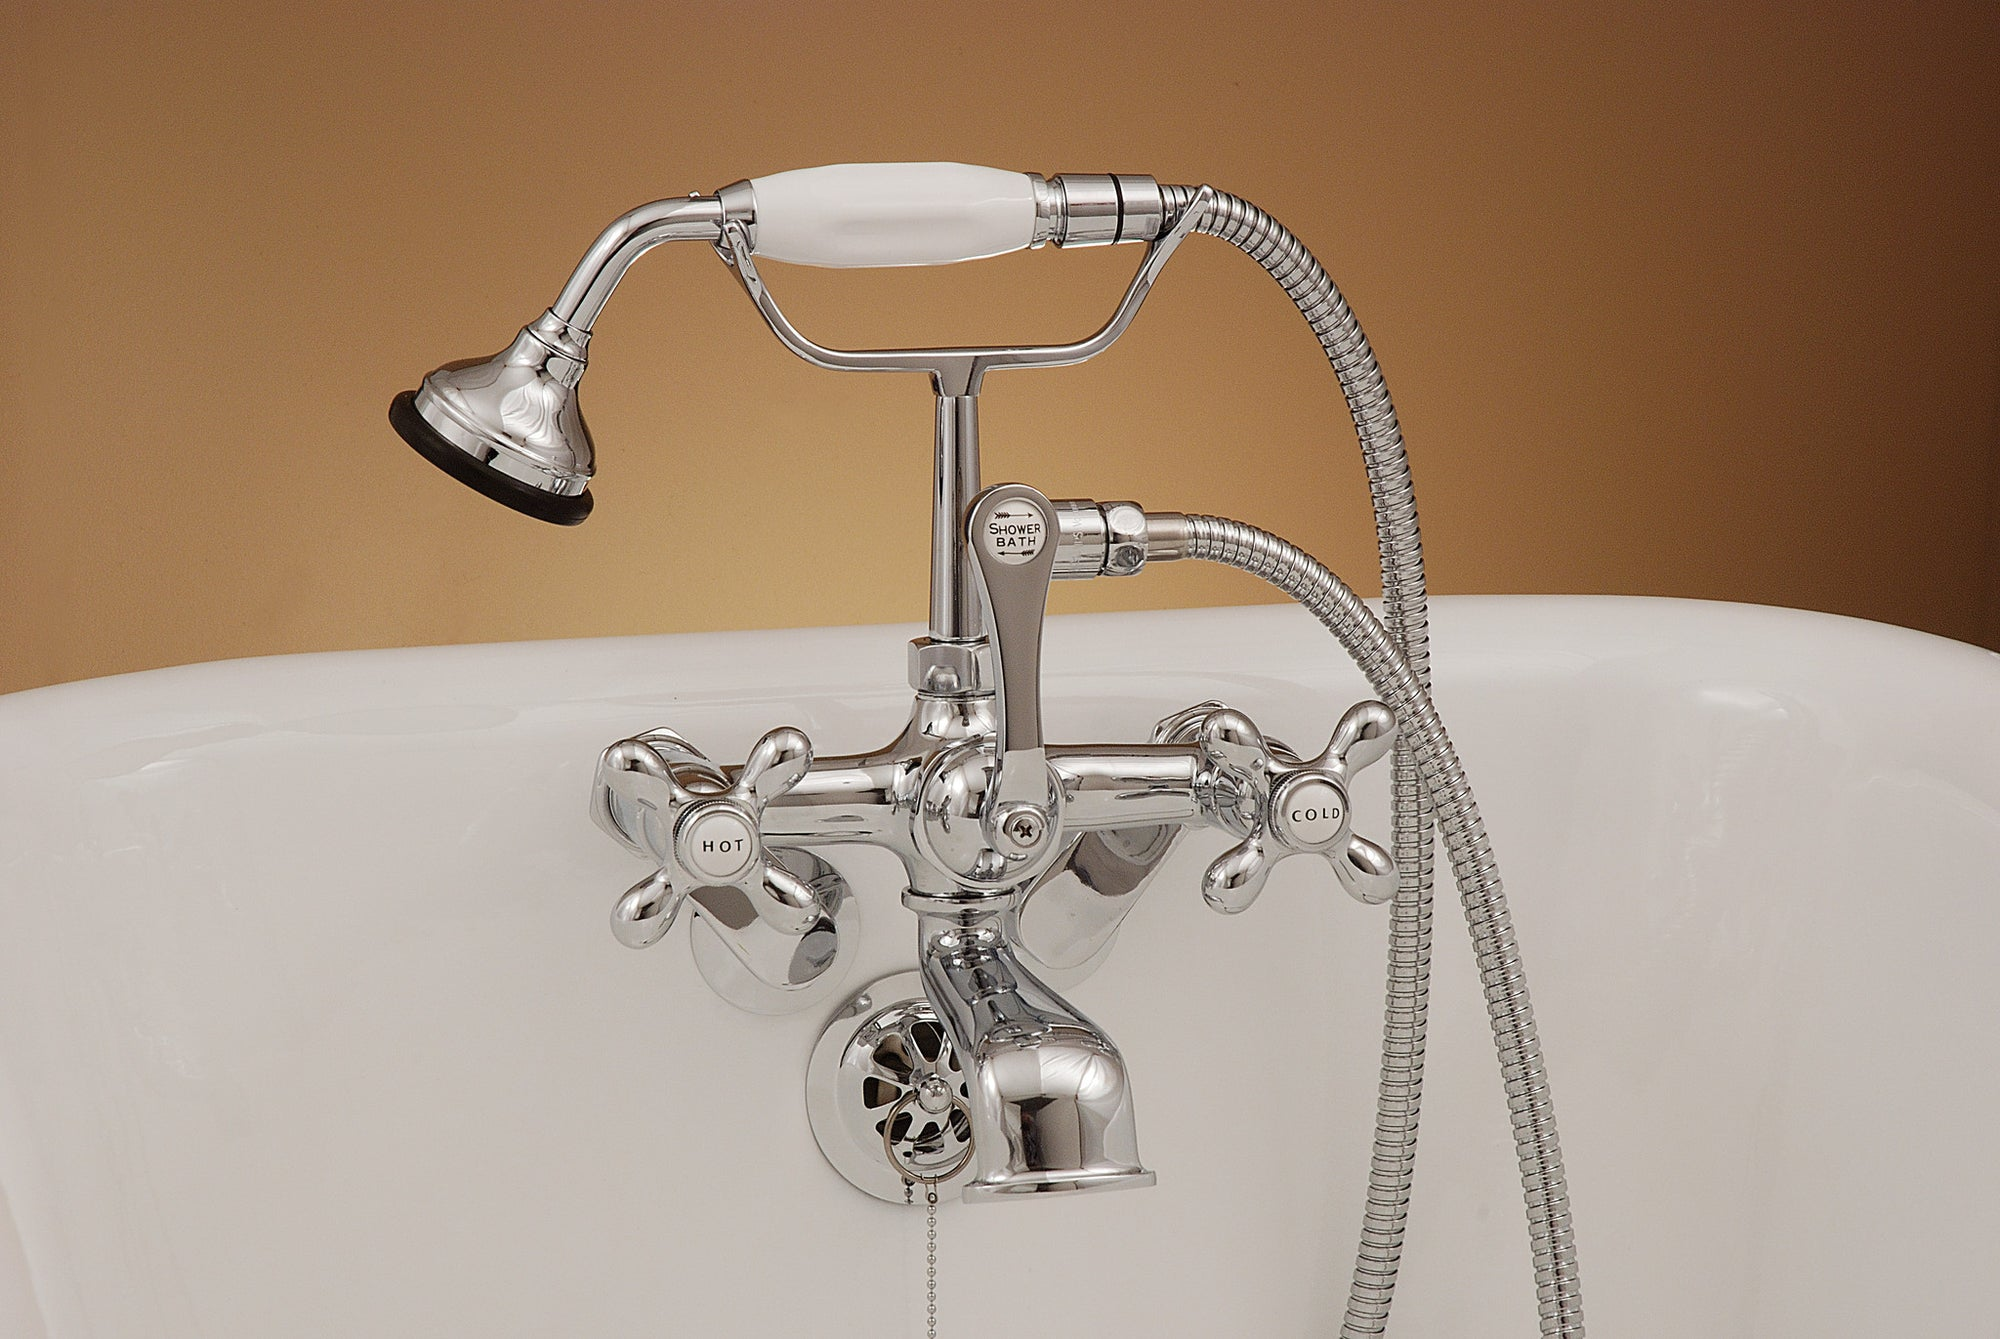 Thames British Telephone Tub Faucet